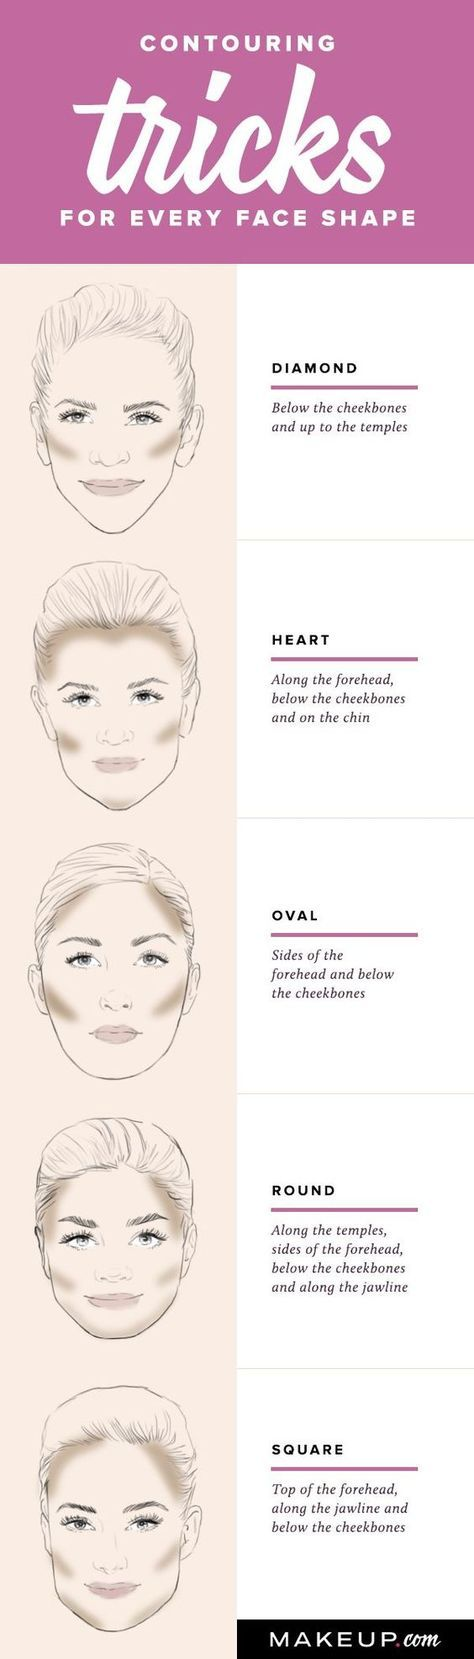 How to Contour Your Face to Look Younger - Page 3 of 3 - Trend To Wear...